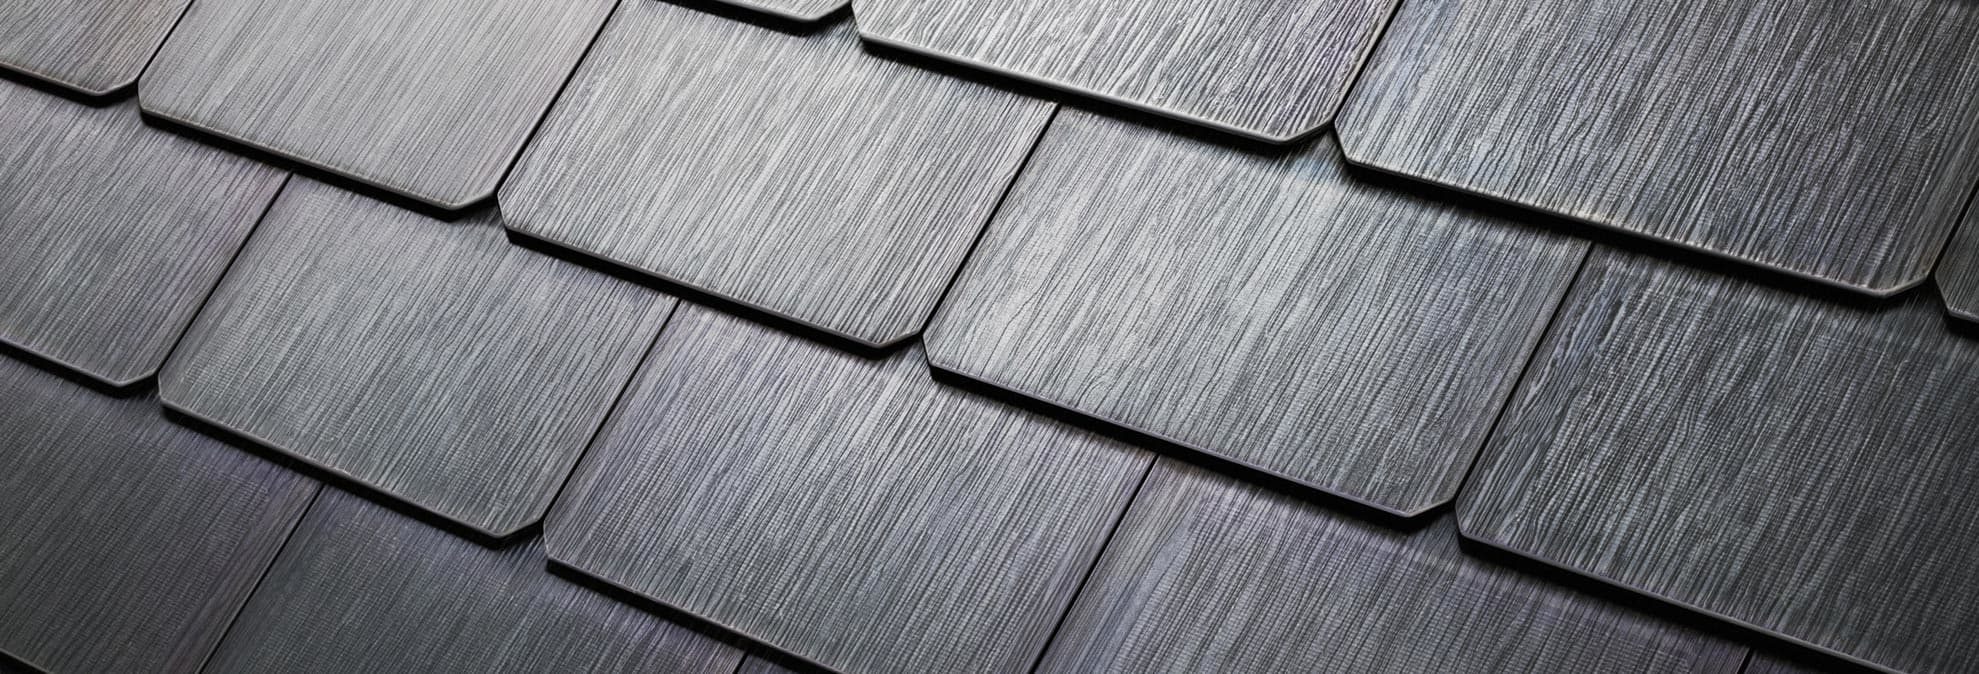 5 Burning Questions (and Answers) About Tesla's Solar Roof Calculator